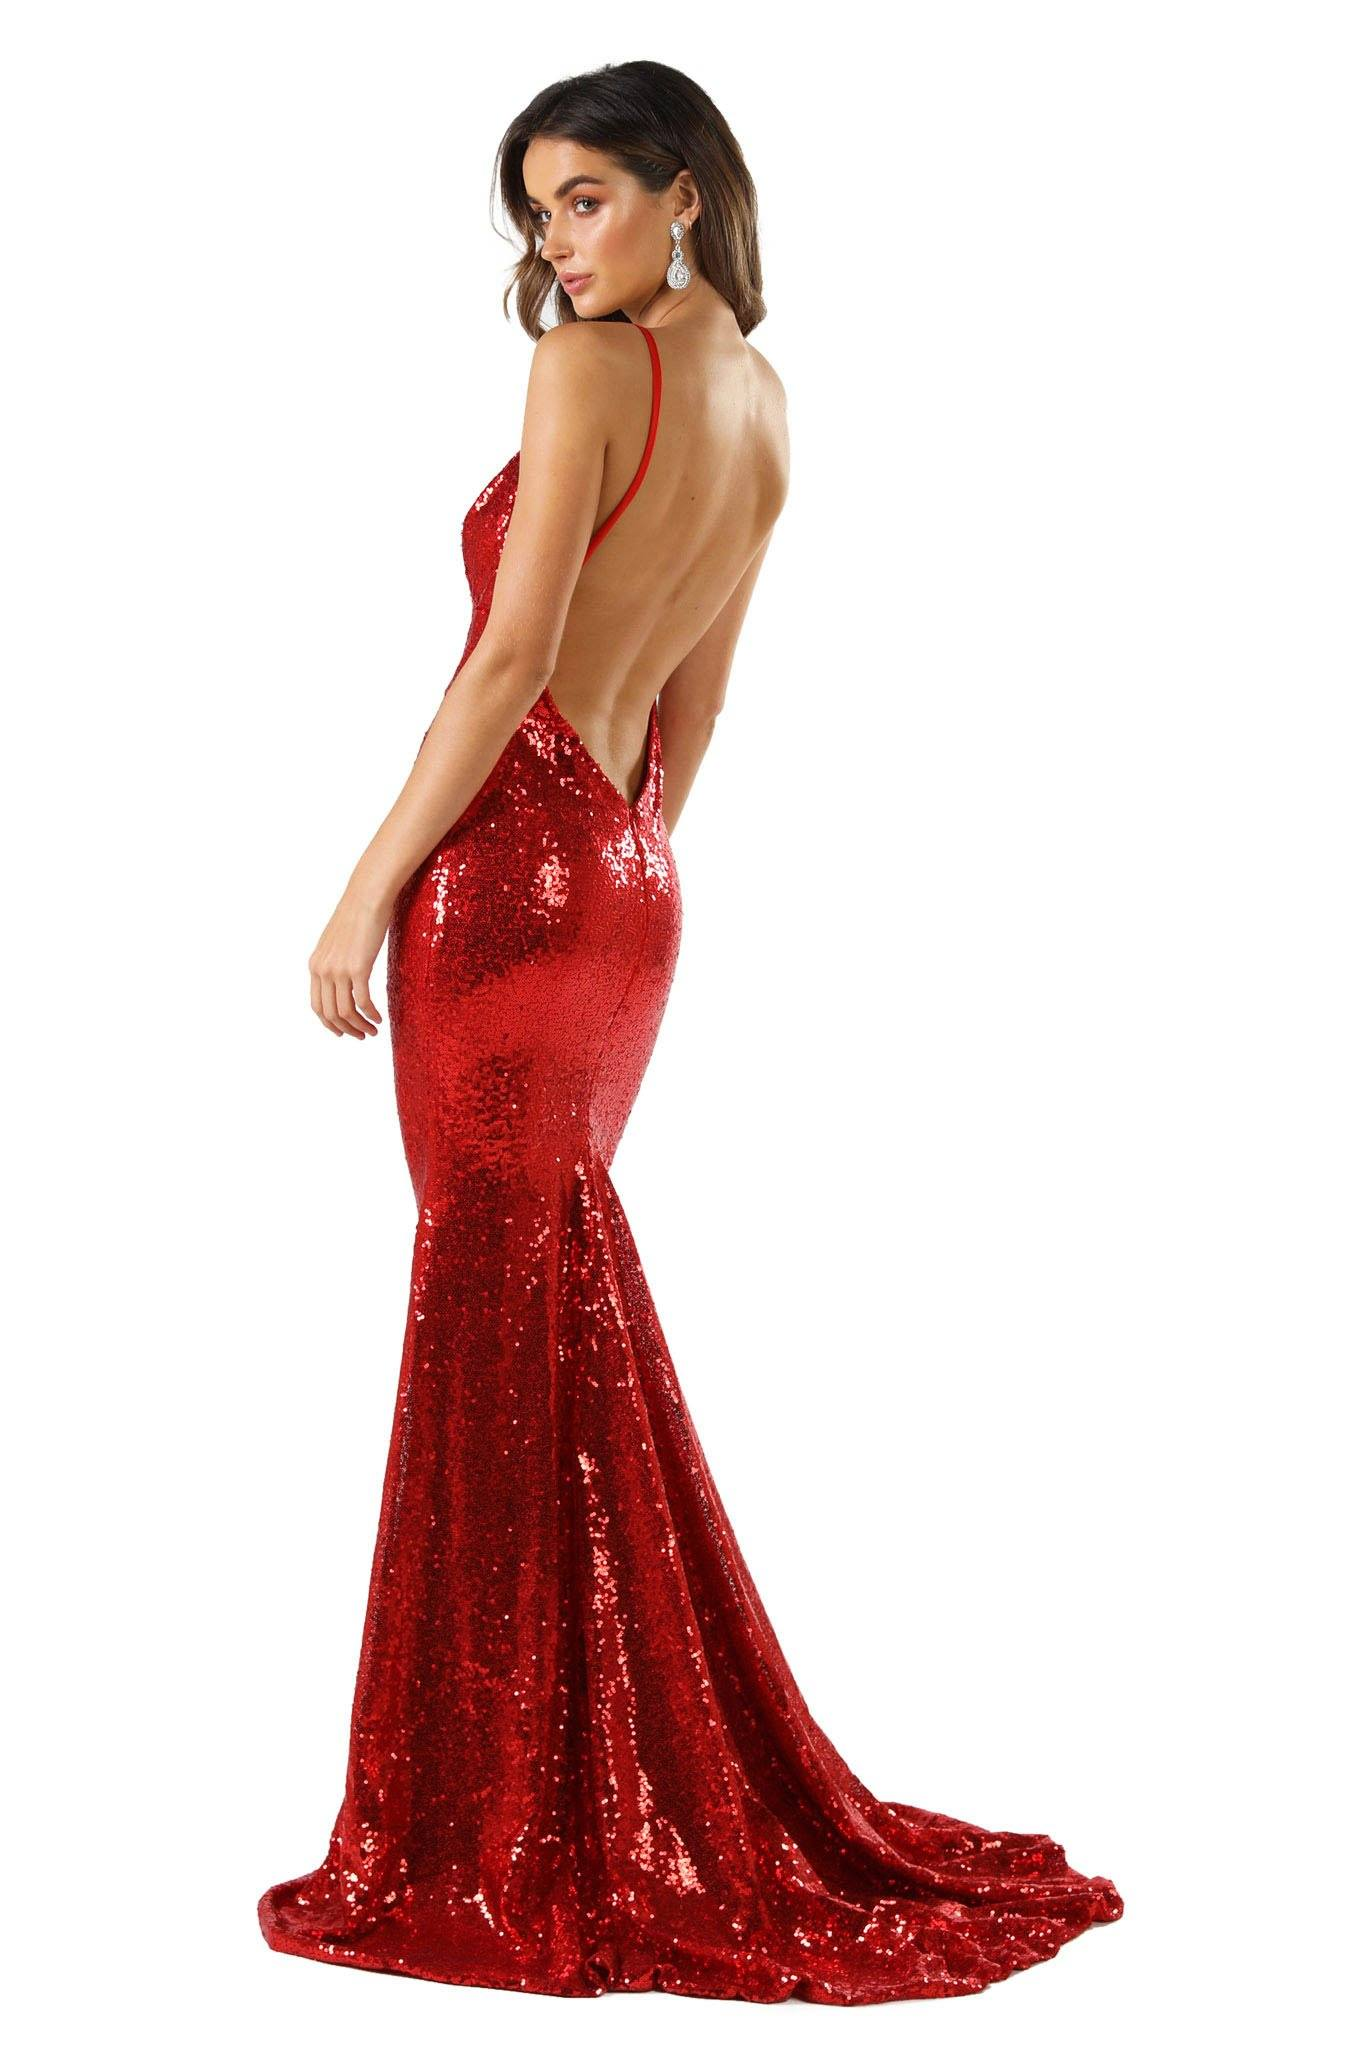 V Shape Backless Design of Bright Red Fitted Sequin Formal Sleeveless Long Gown featuring Deep V Neck, Thin Shoulder Straps, Open back design, and Long Train